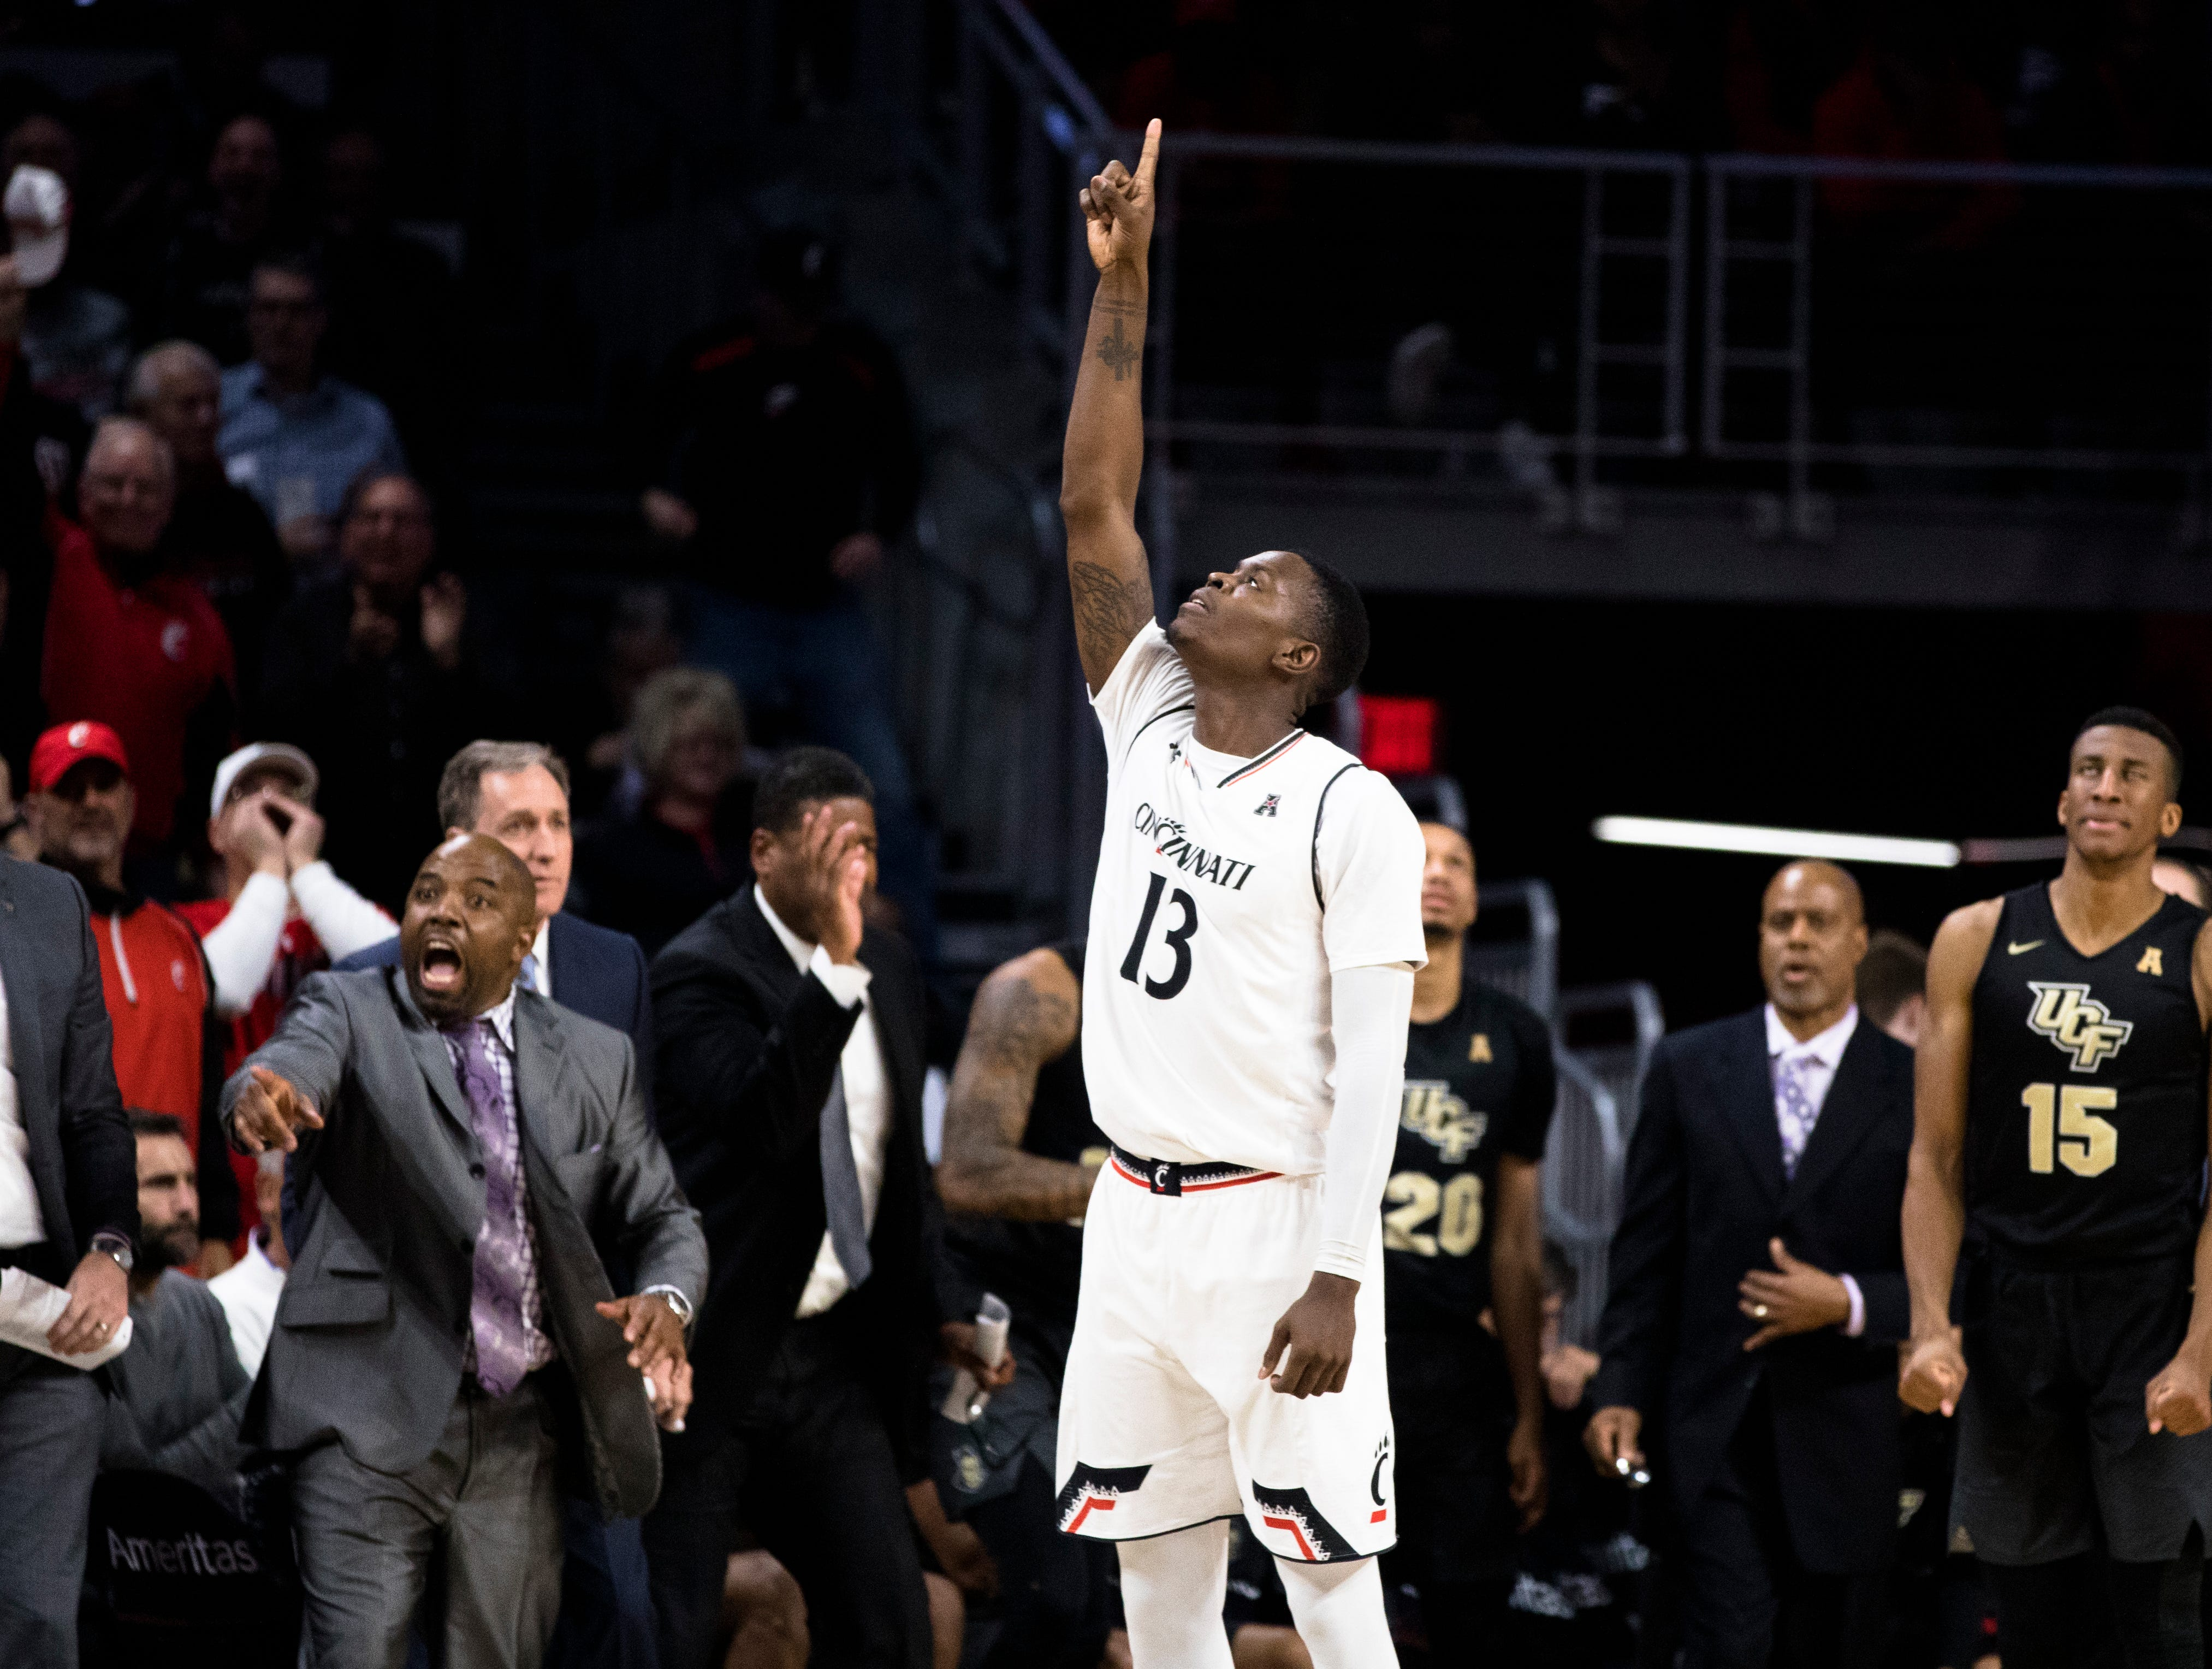 Cincinnati Bearcats forward Trevon Scott (13) celebrates after hitting a 3-pointer in the second half of the NCAA men's basketball game between Cincinnati Bearcats and UCF Knights on Thursday, Feb. 21, 2019, at Fifth Third Arena in Cincinnati.